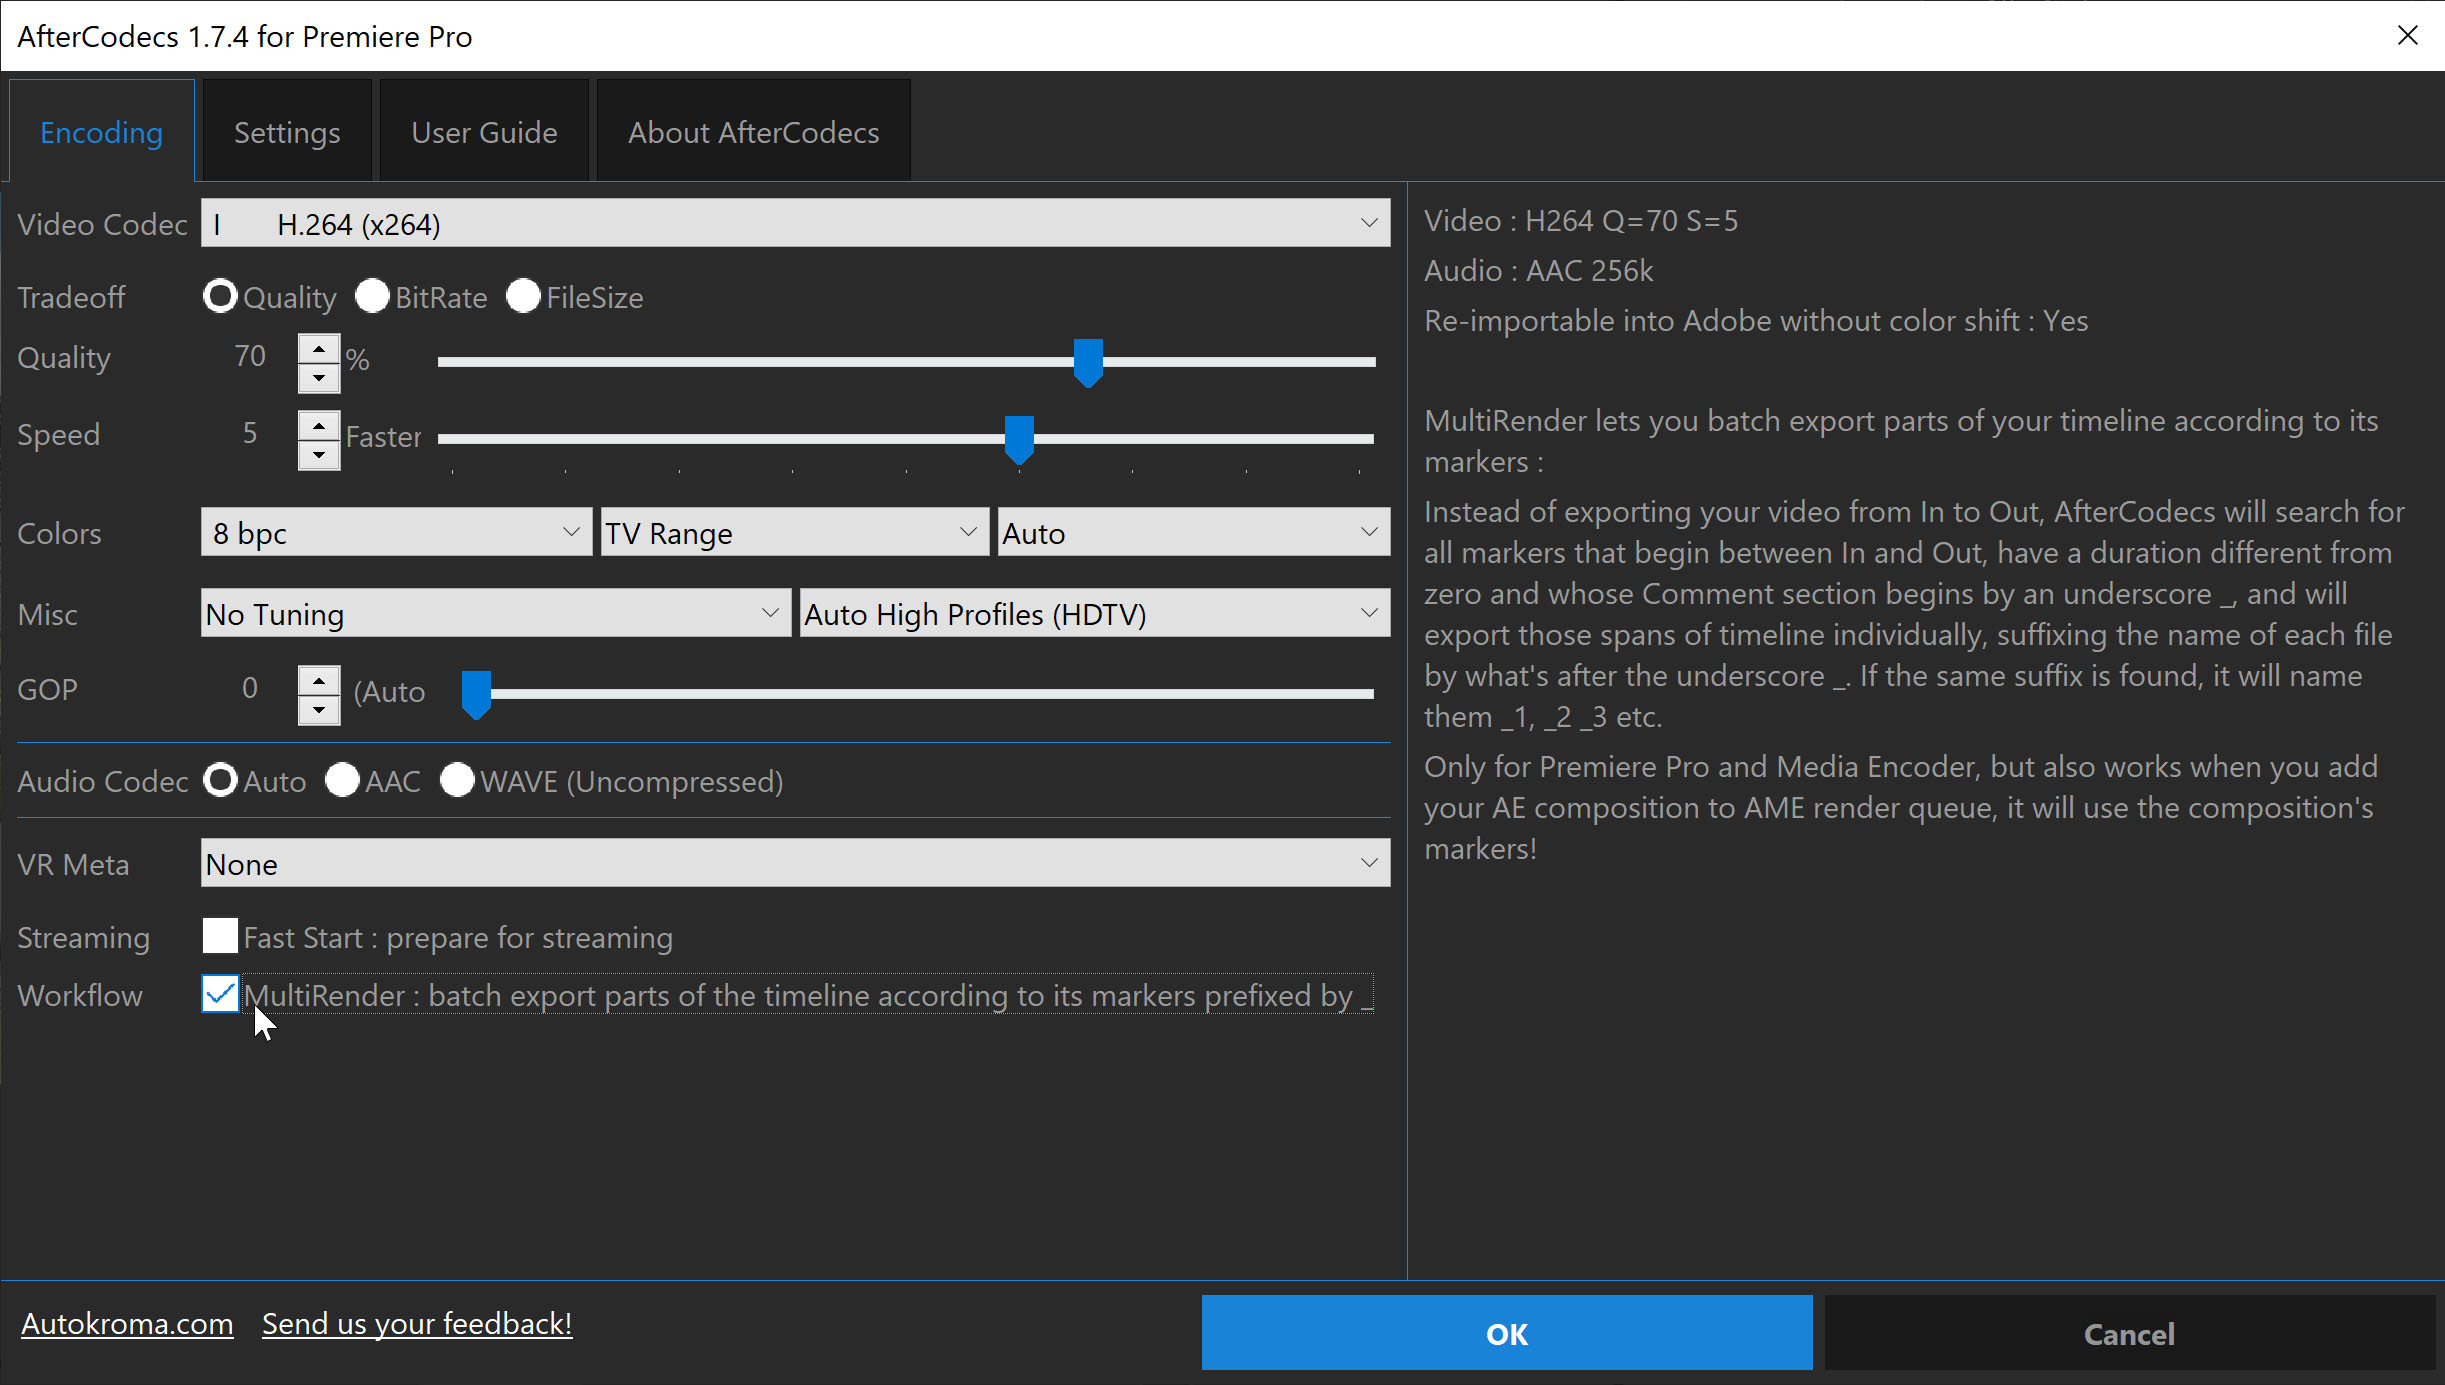 PProAME AfterCodecs MultiRender Checkbox